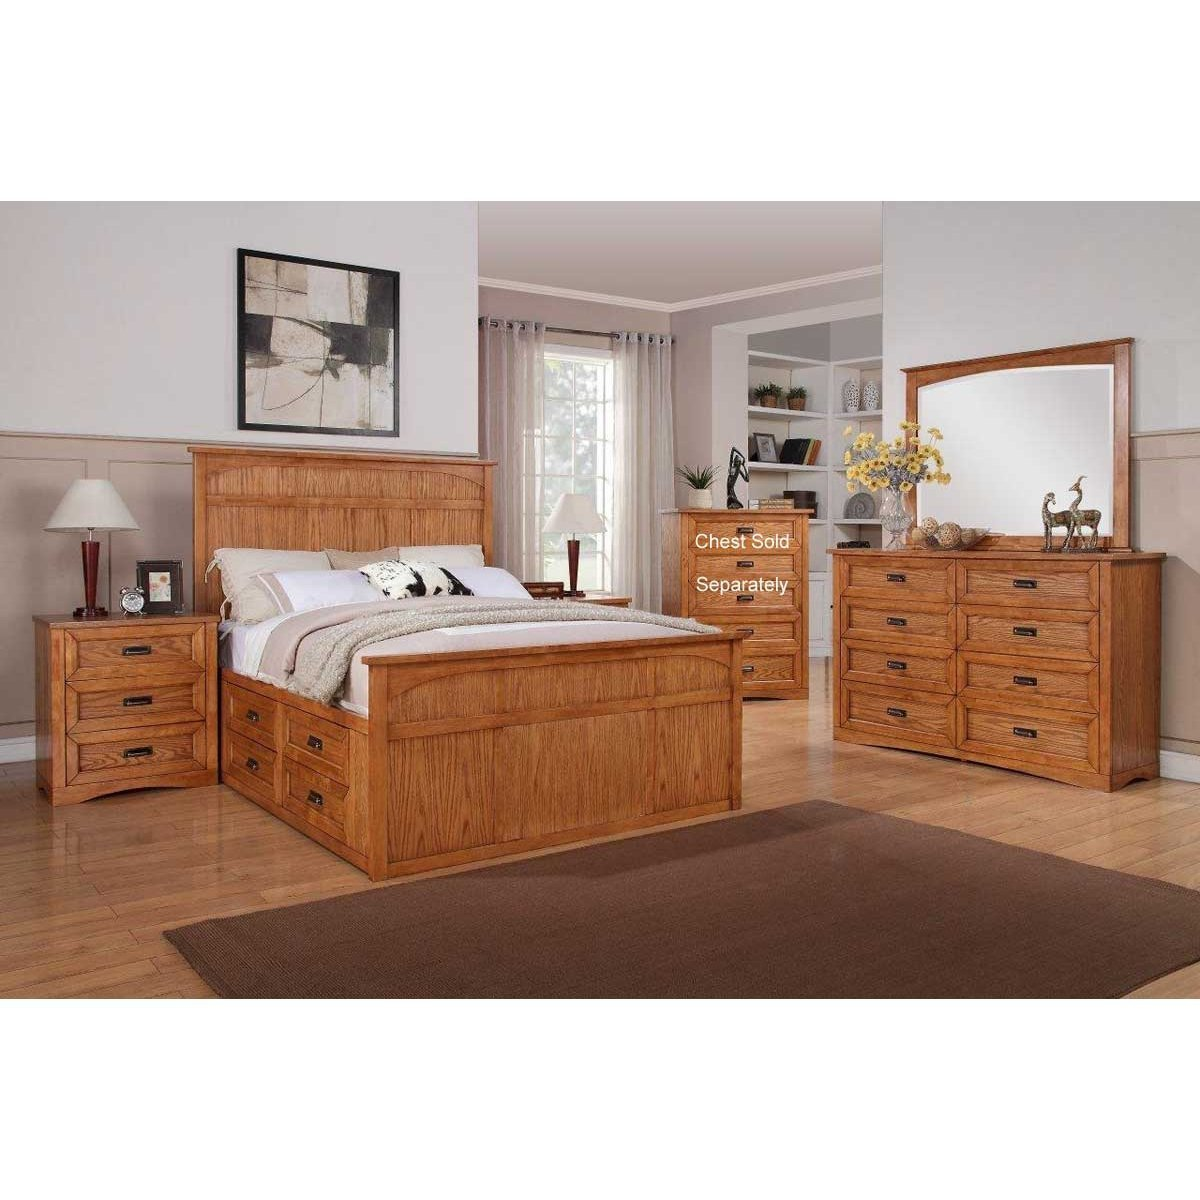 Best Dixie 7 Piece King Bedroom Set Rcwilley Image1 800 Jpg With Pictures